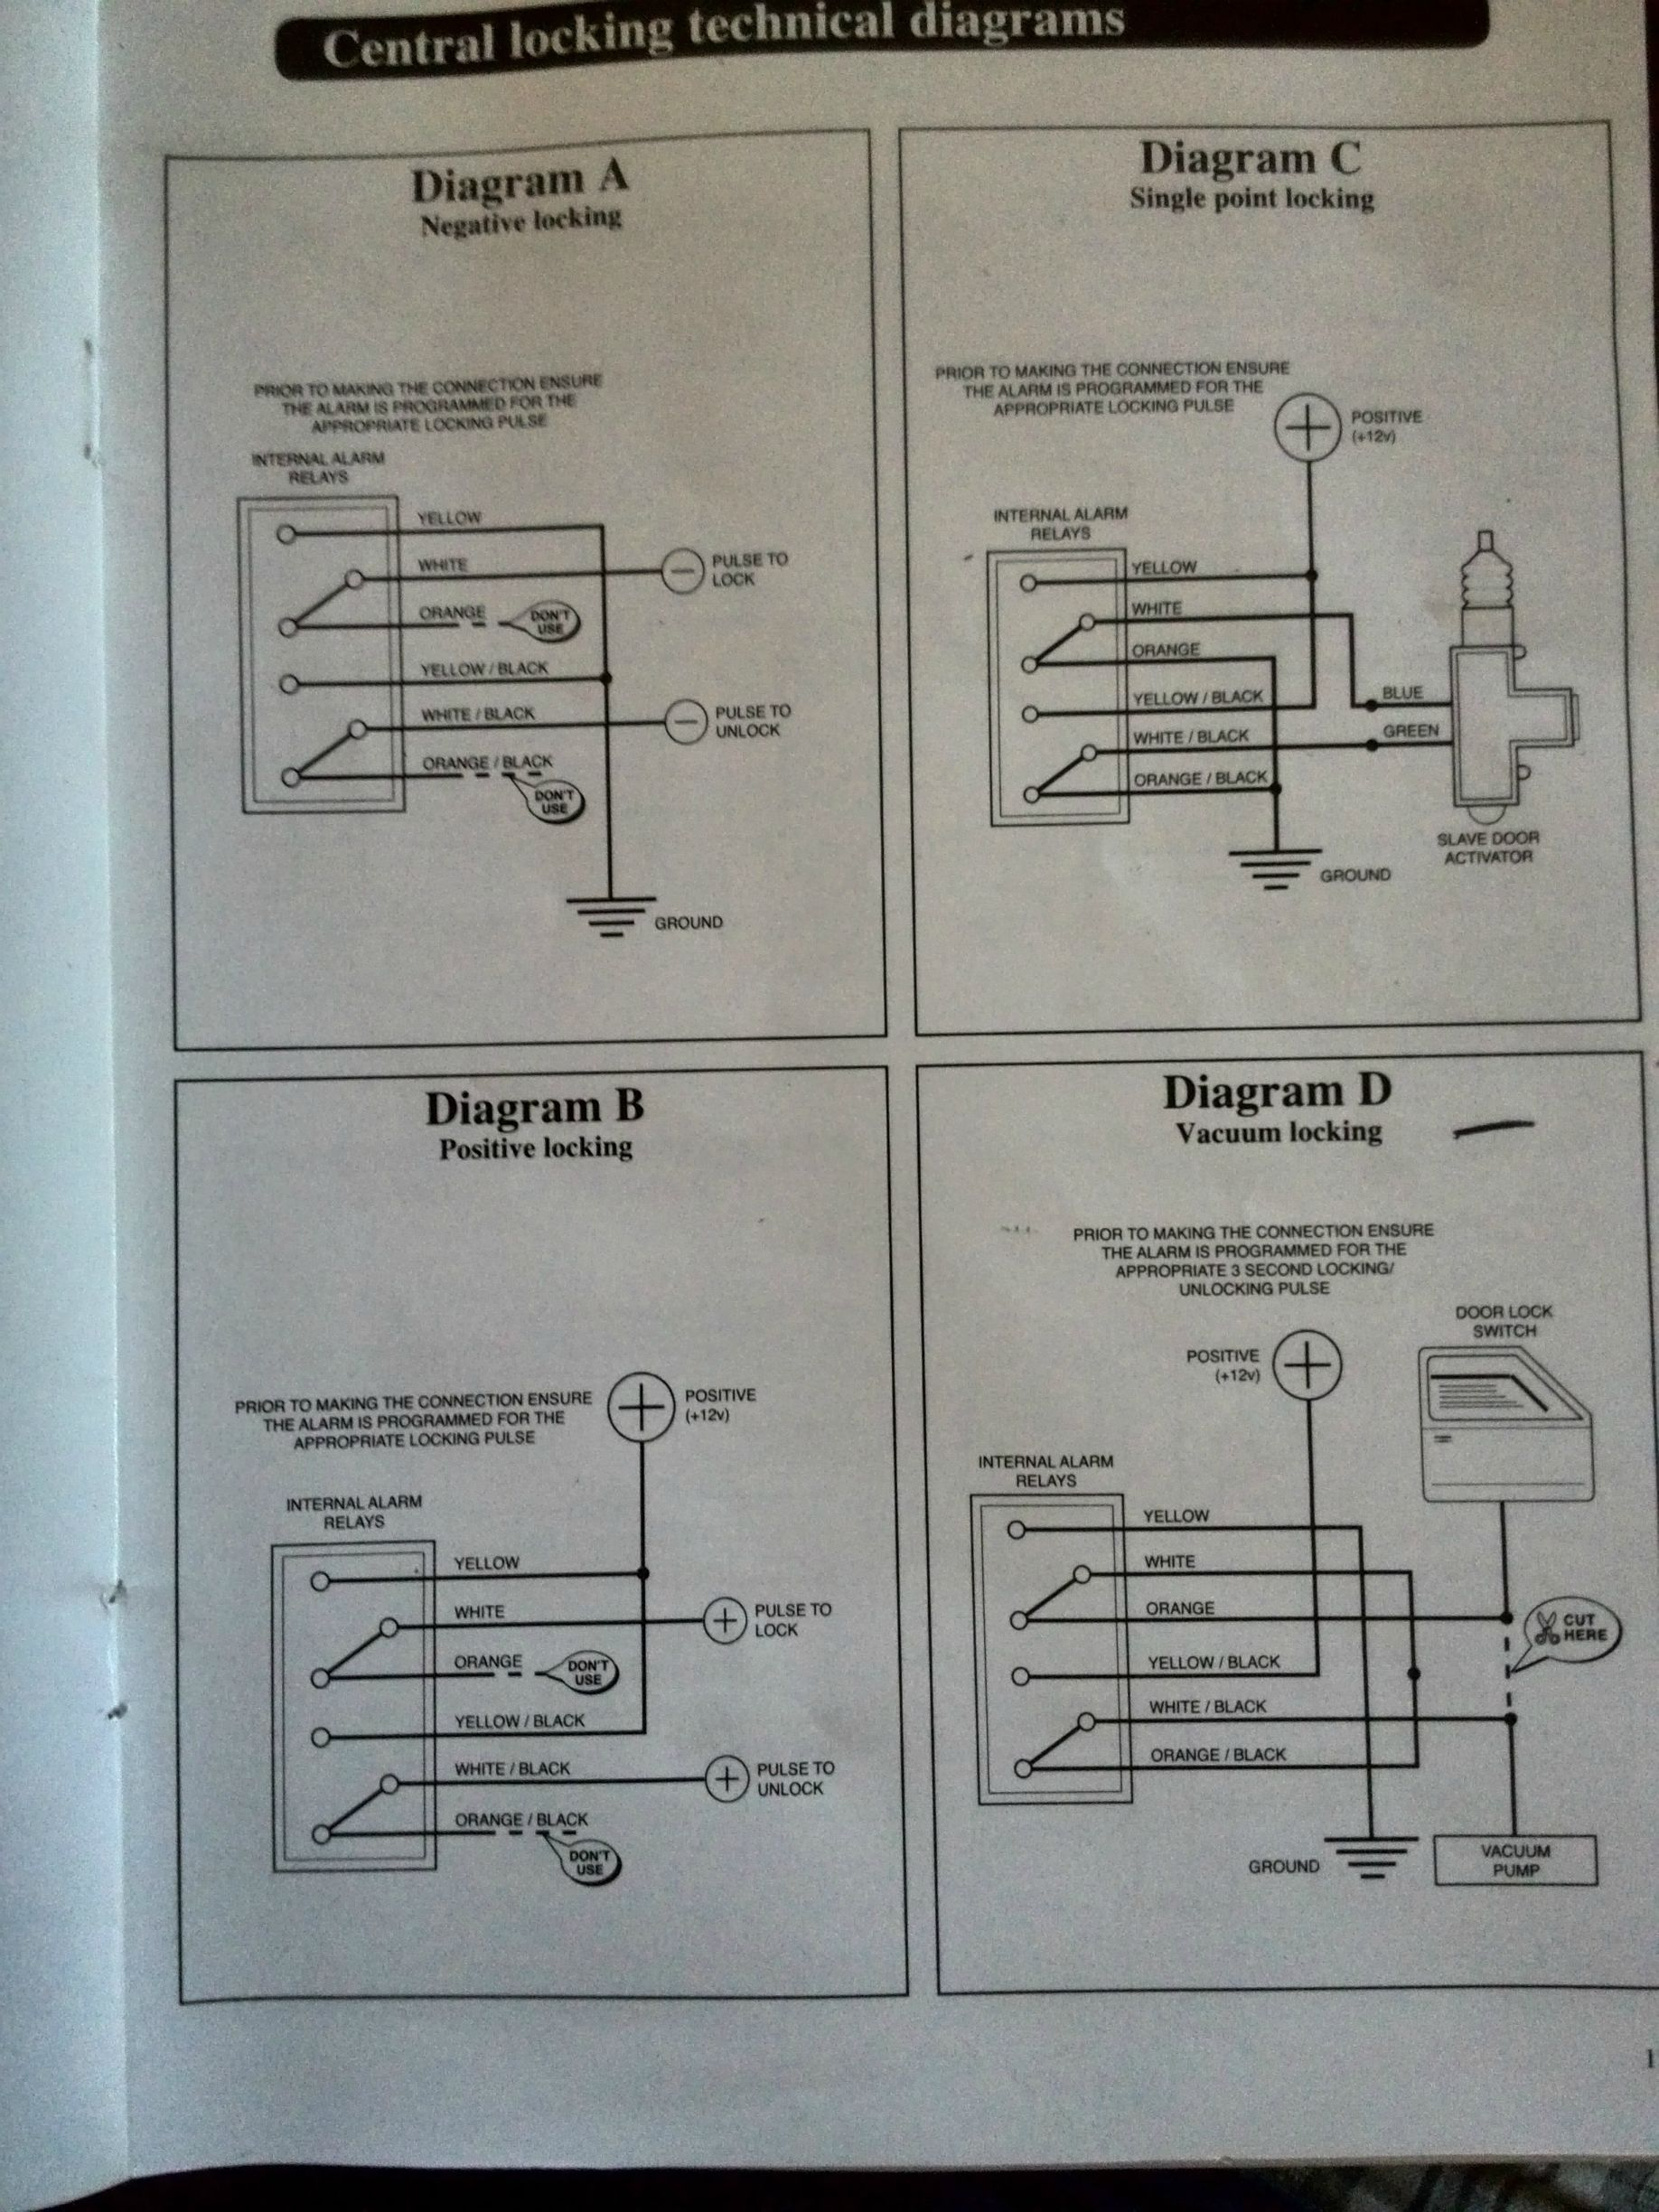 Renault Clio Fuse Box 1997 Kangoo 2 Wiring Library Help Needed Determining Ii Central Locking Diagram Pic Iuimz9v